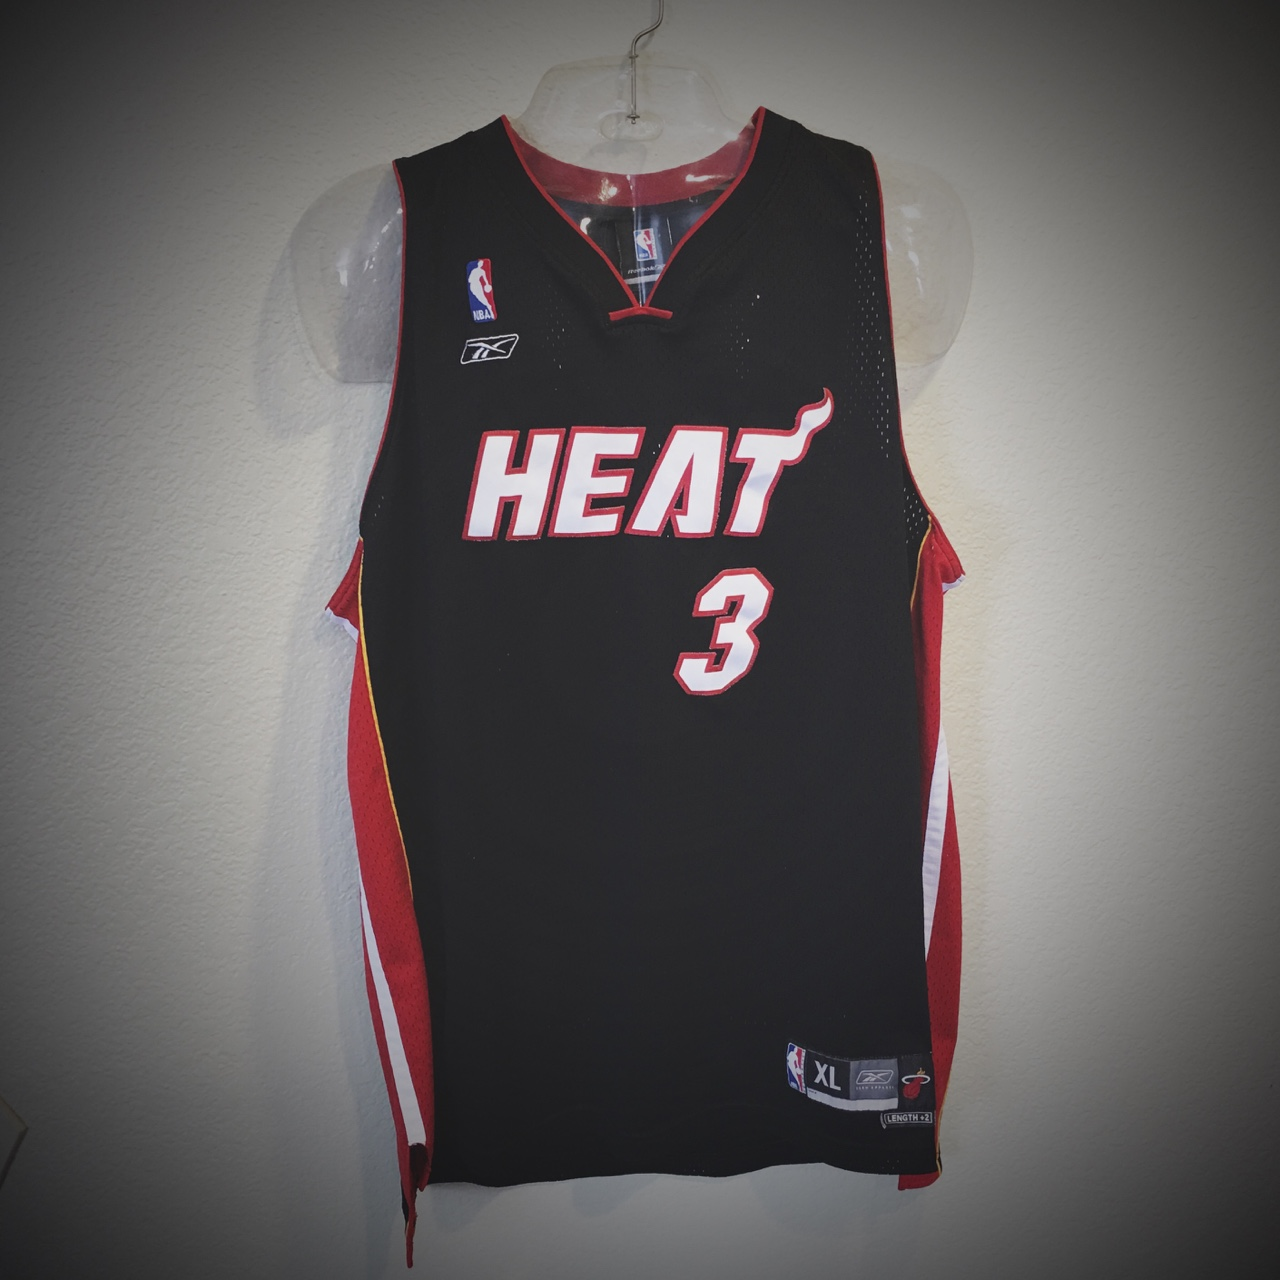 the best attitude 74c8d 2e223 Miami Heat Vintage Dwyane Wade Reebok Swingman NBA ...